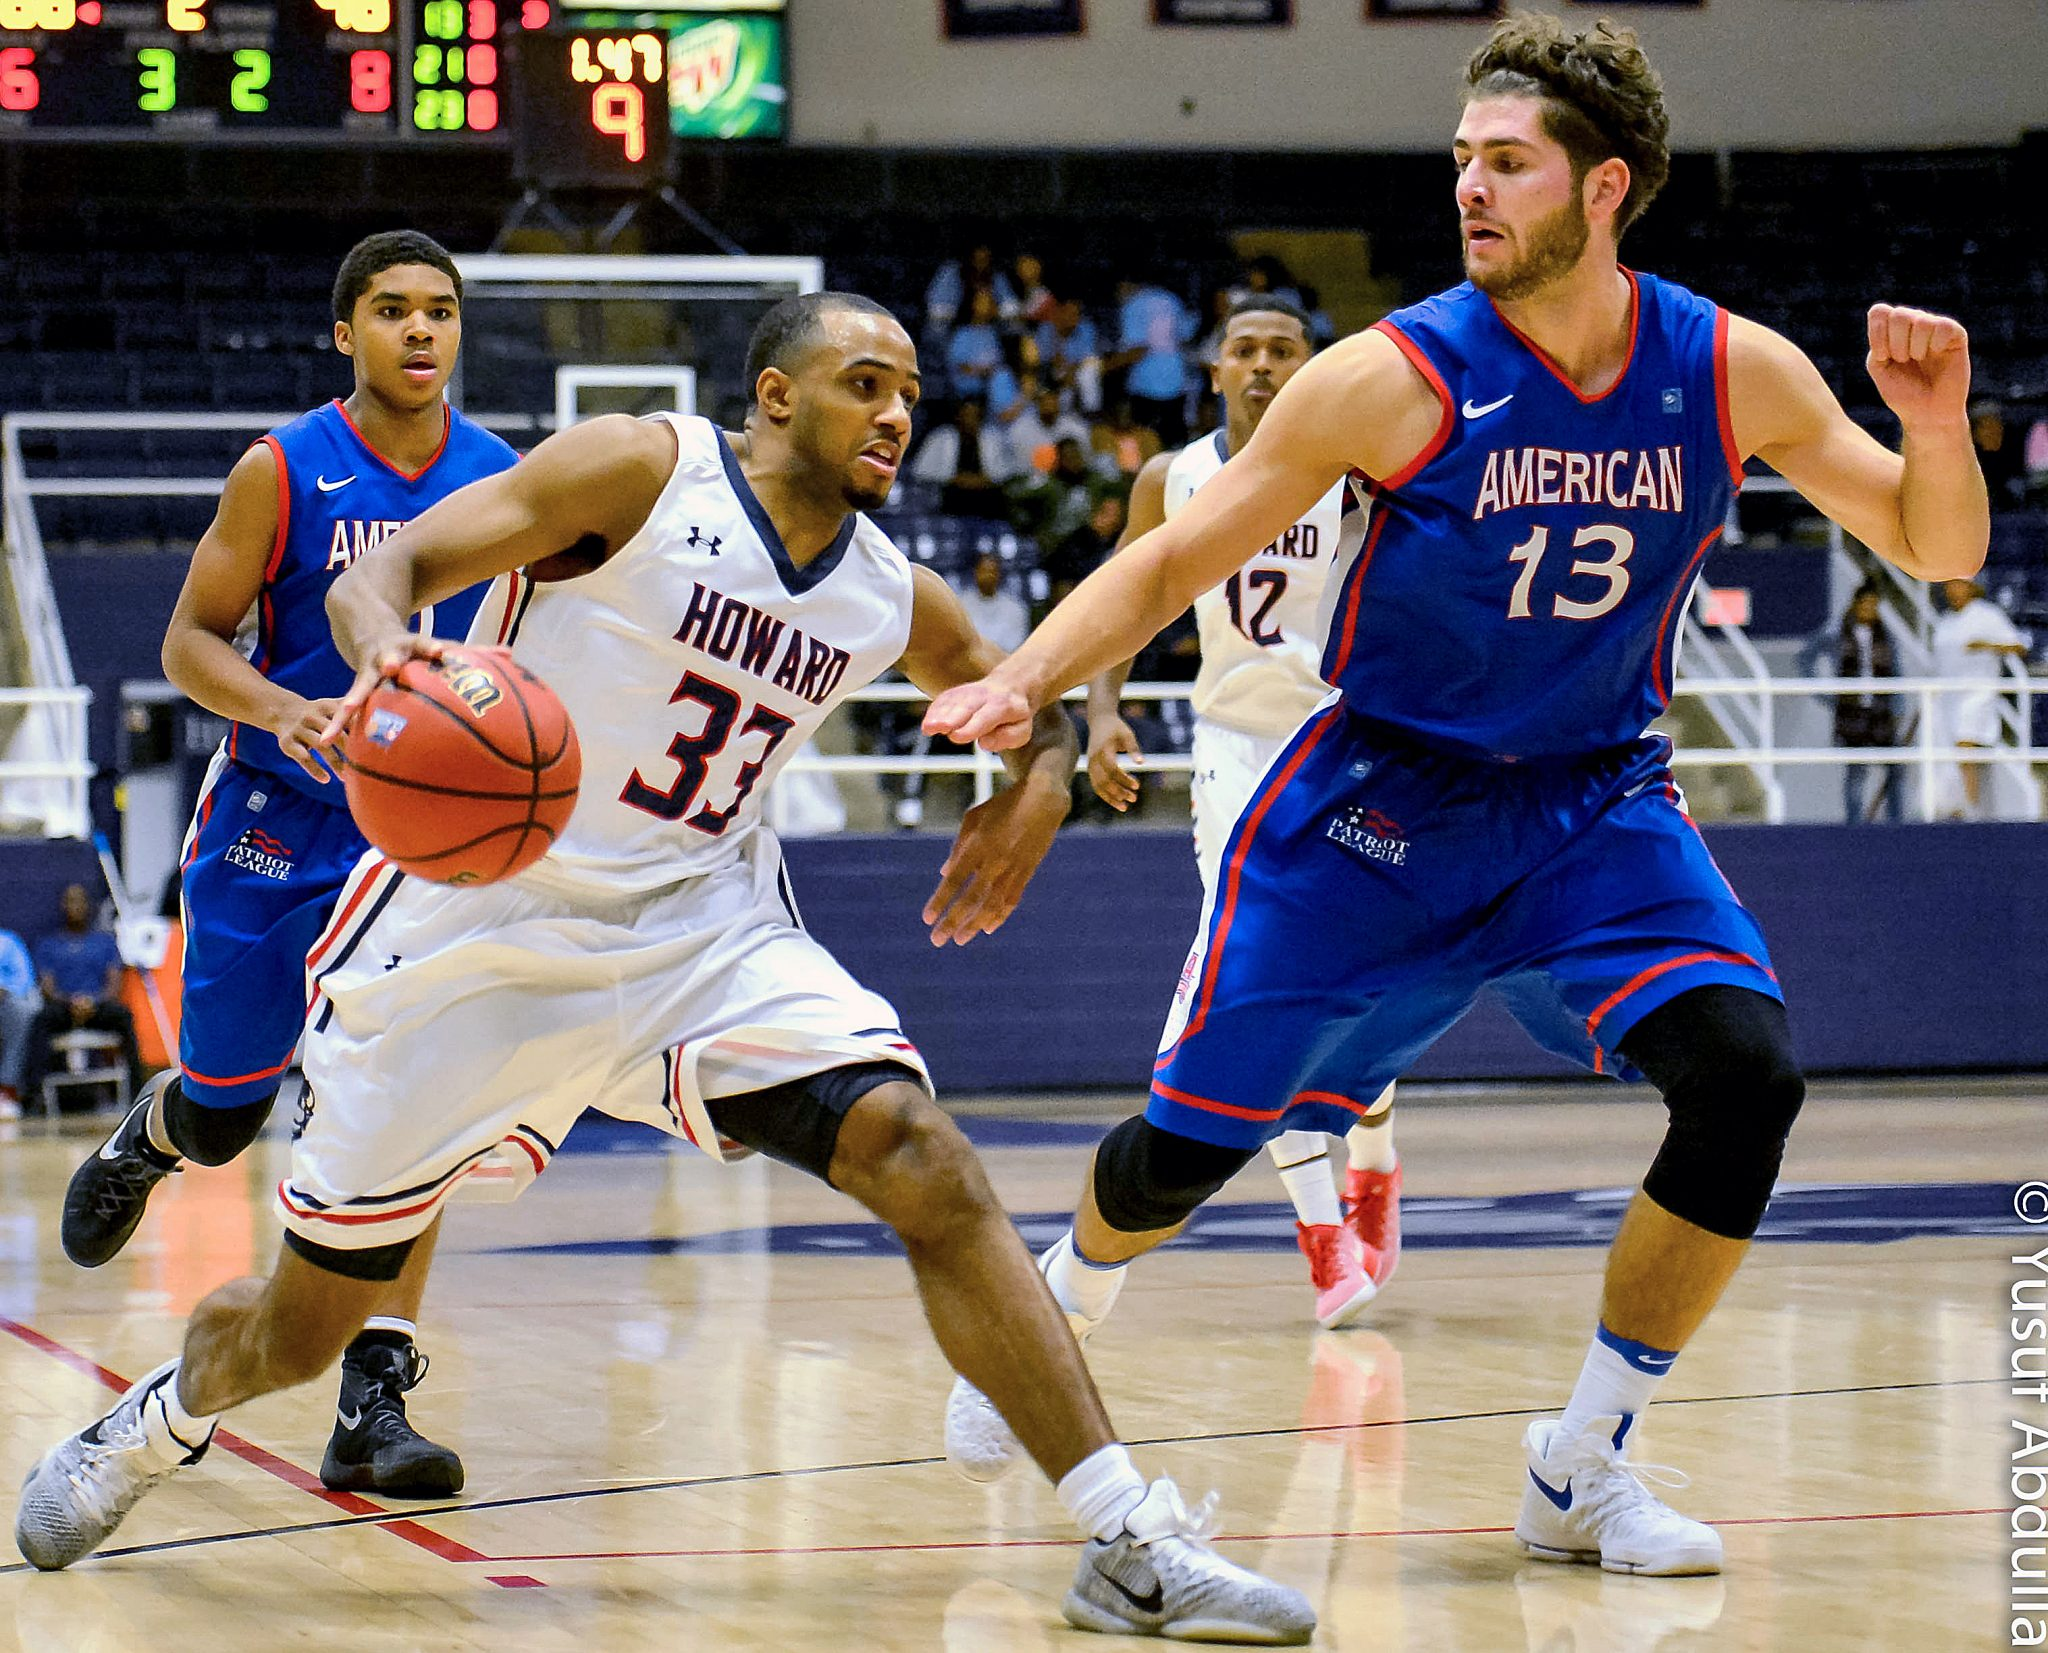 """Howard Bison guard James """"JT"""" Miller scored 30 points for the second straight game in Howard's 71-54 win against American University at Burr Gymnasium in Northwest on Saturday, Dec. 3. /Photo of courtesy Abdullah Yusuf"""